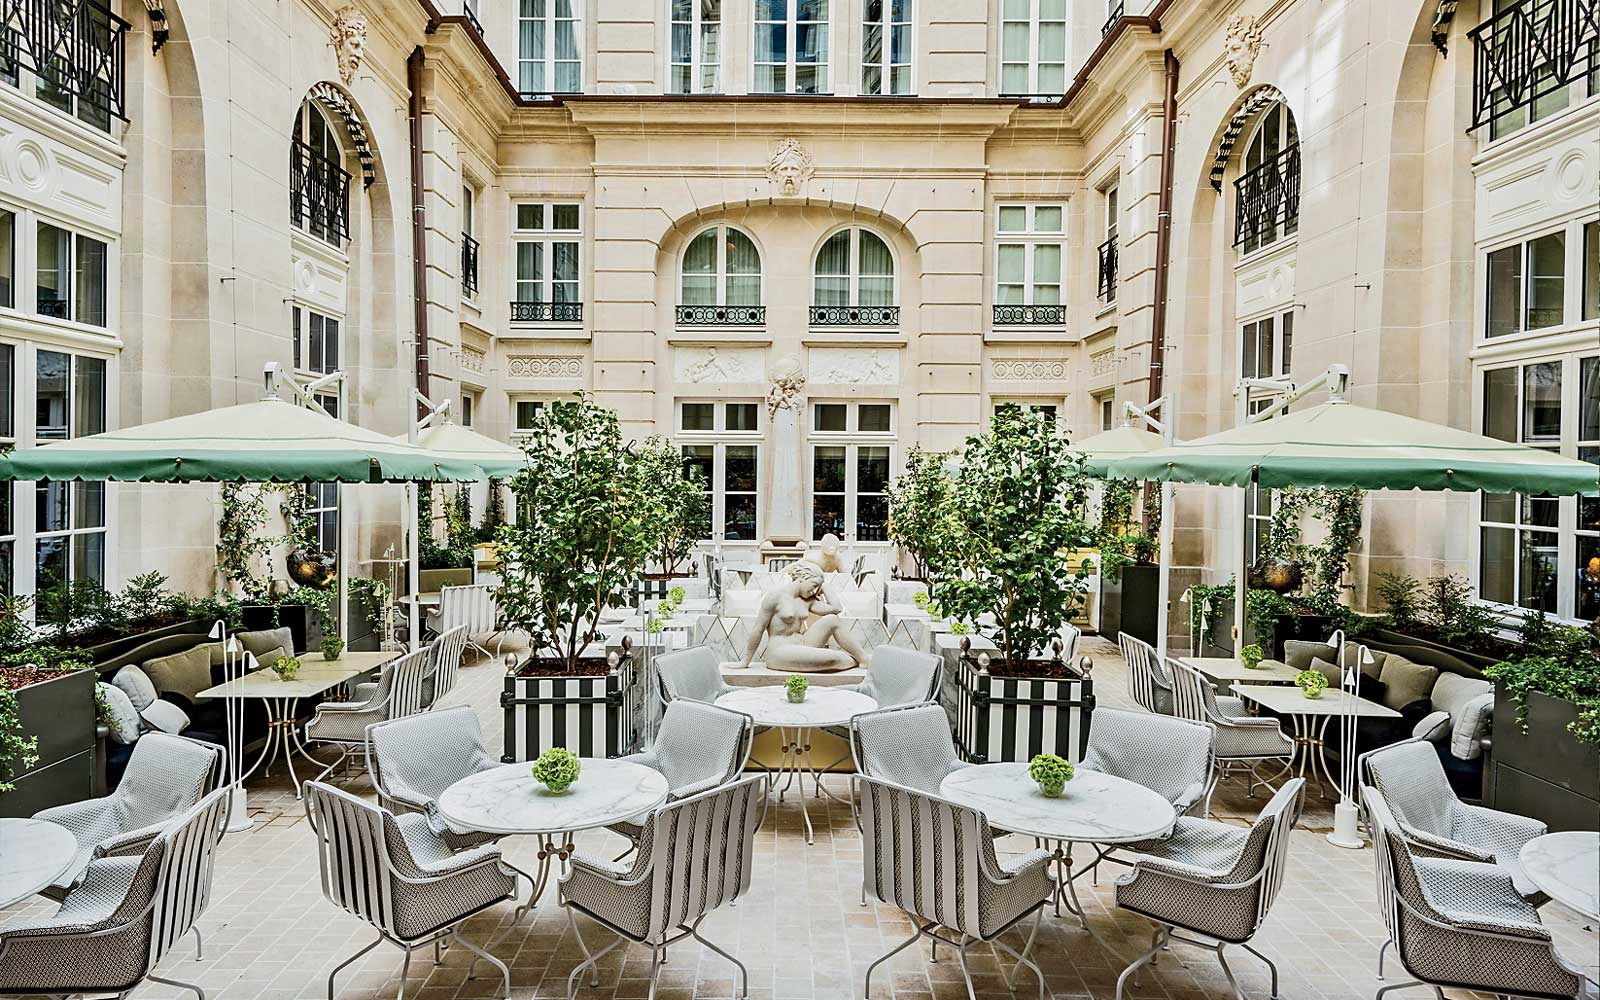 Courtyard dining at the Hotel de Crillon in Paris, France